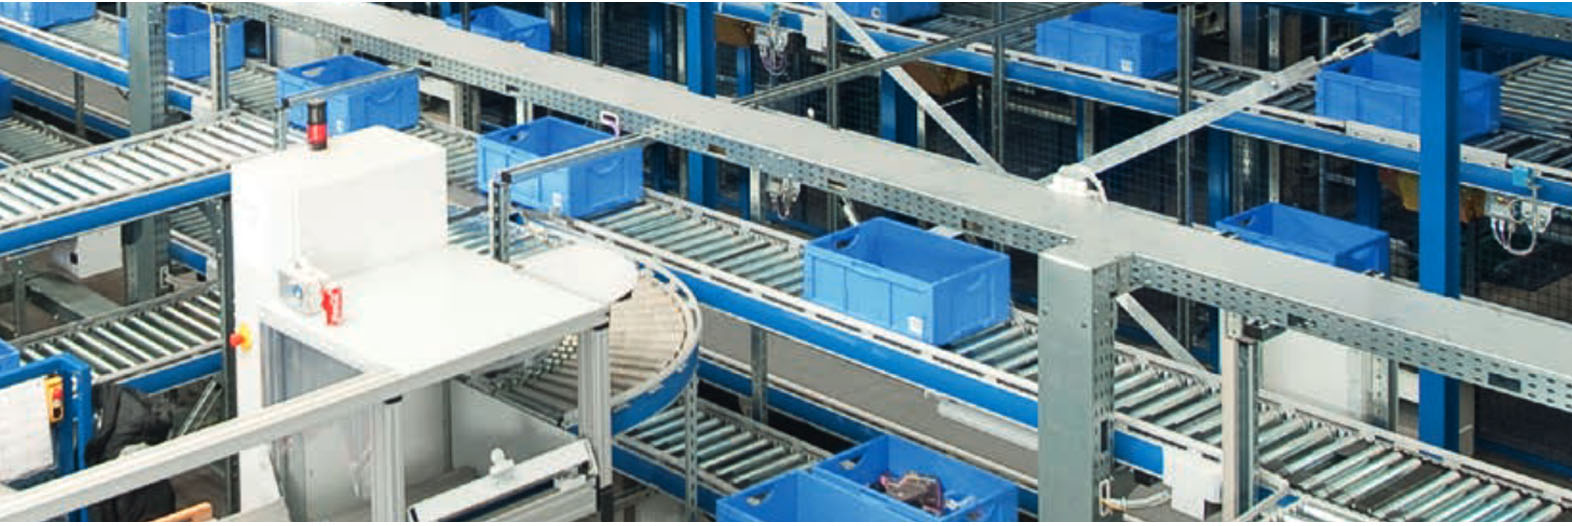 Warehouses with Horizontal Carousel Systems. Quality Horizontal Carousel Systems. SSI Schaefer. www.schaefershelving.com